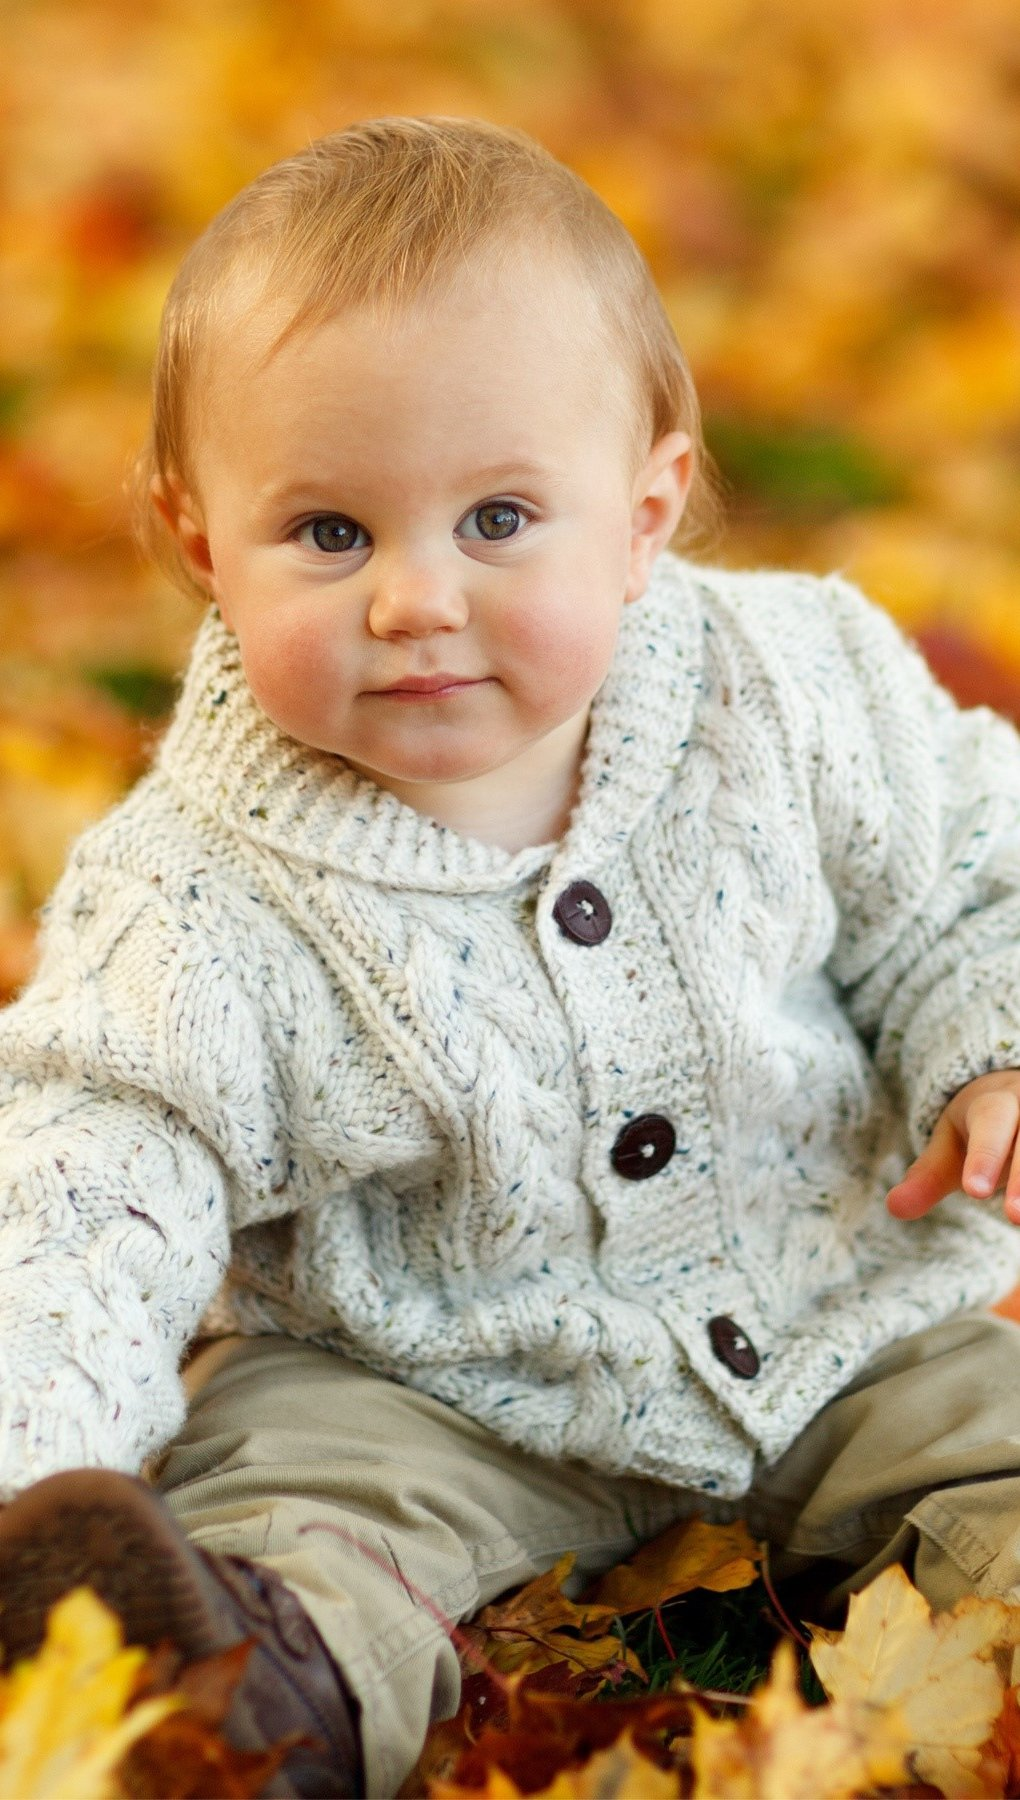 Wallpaper A baby in autumn leaves Vertical